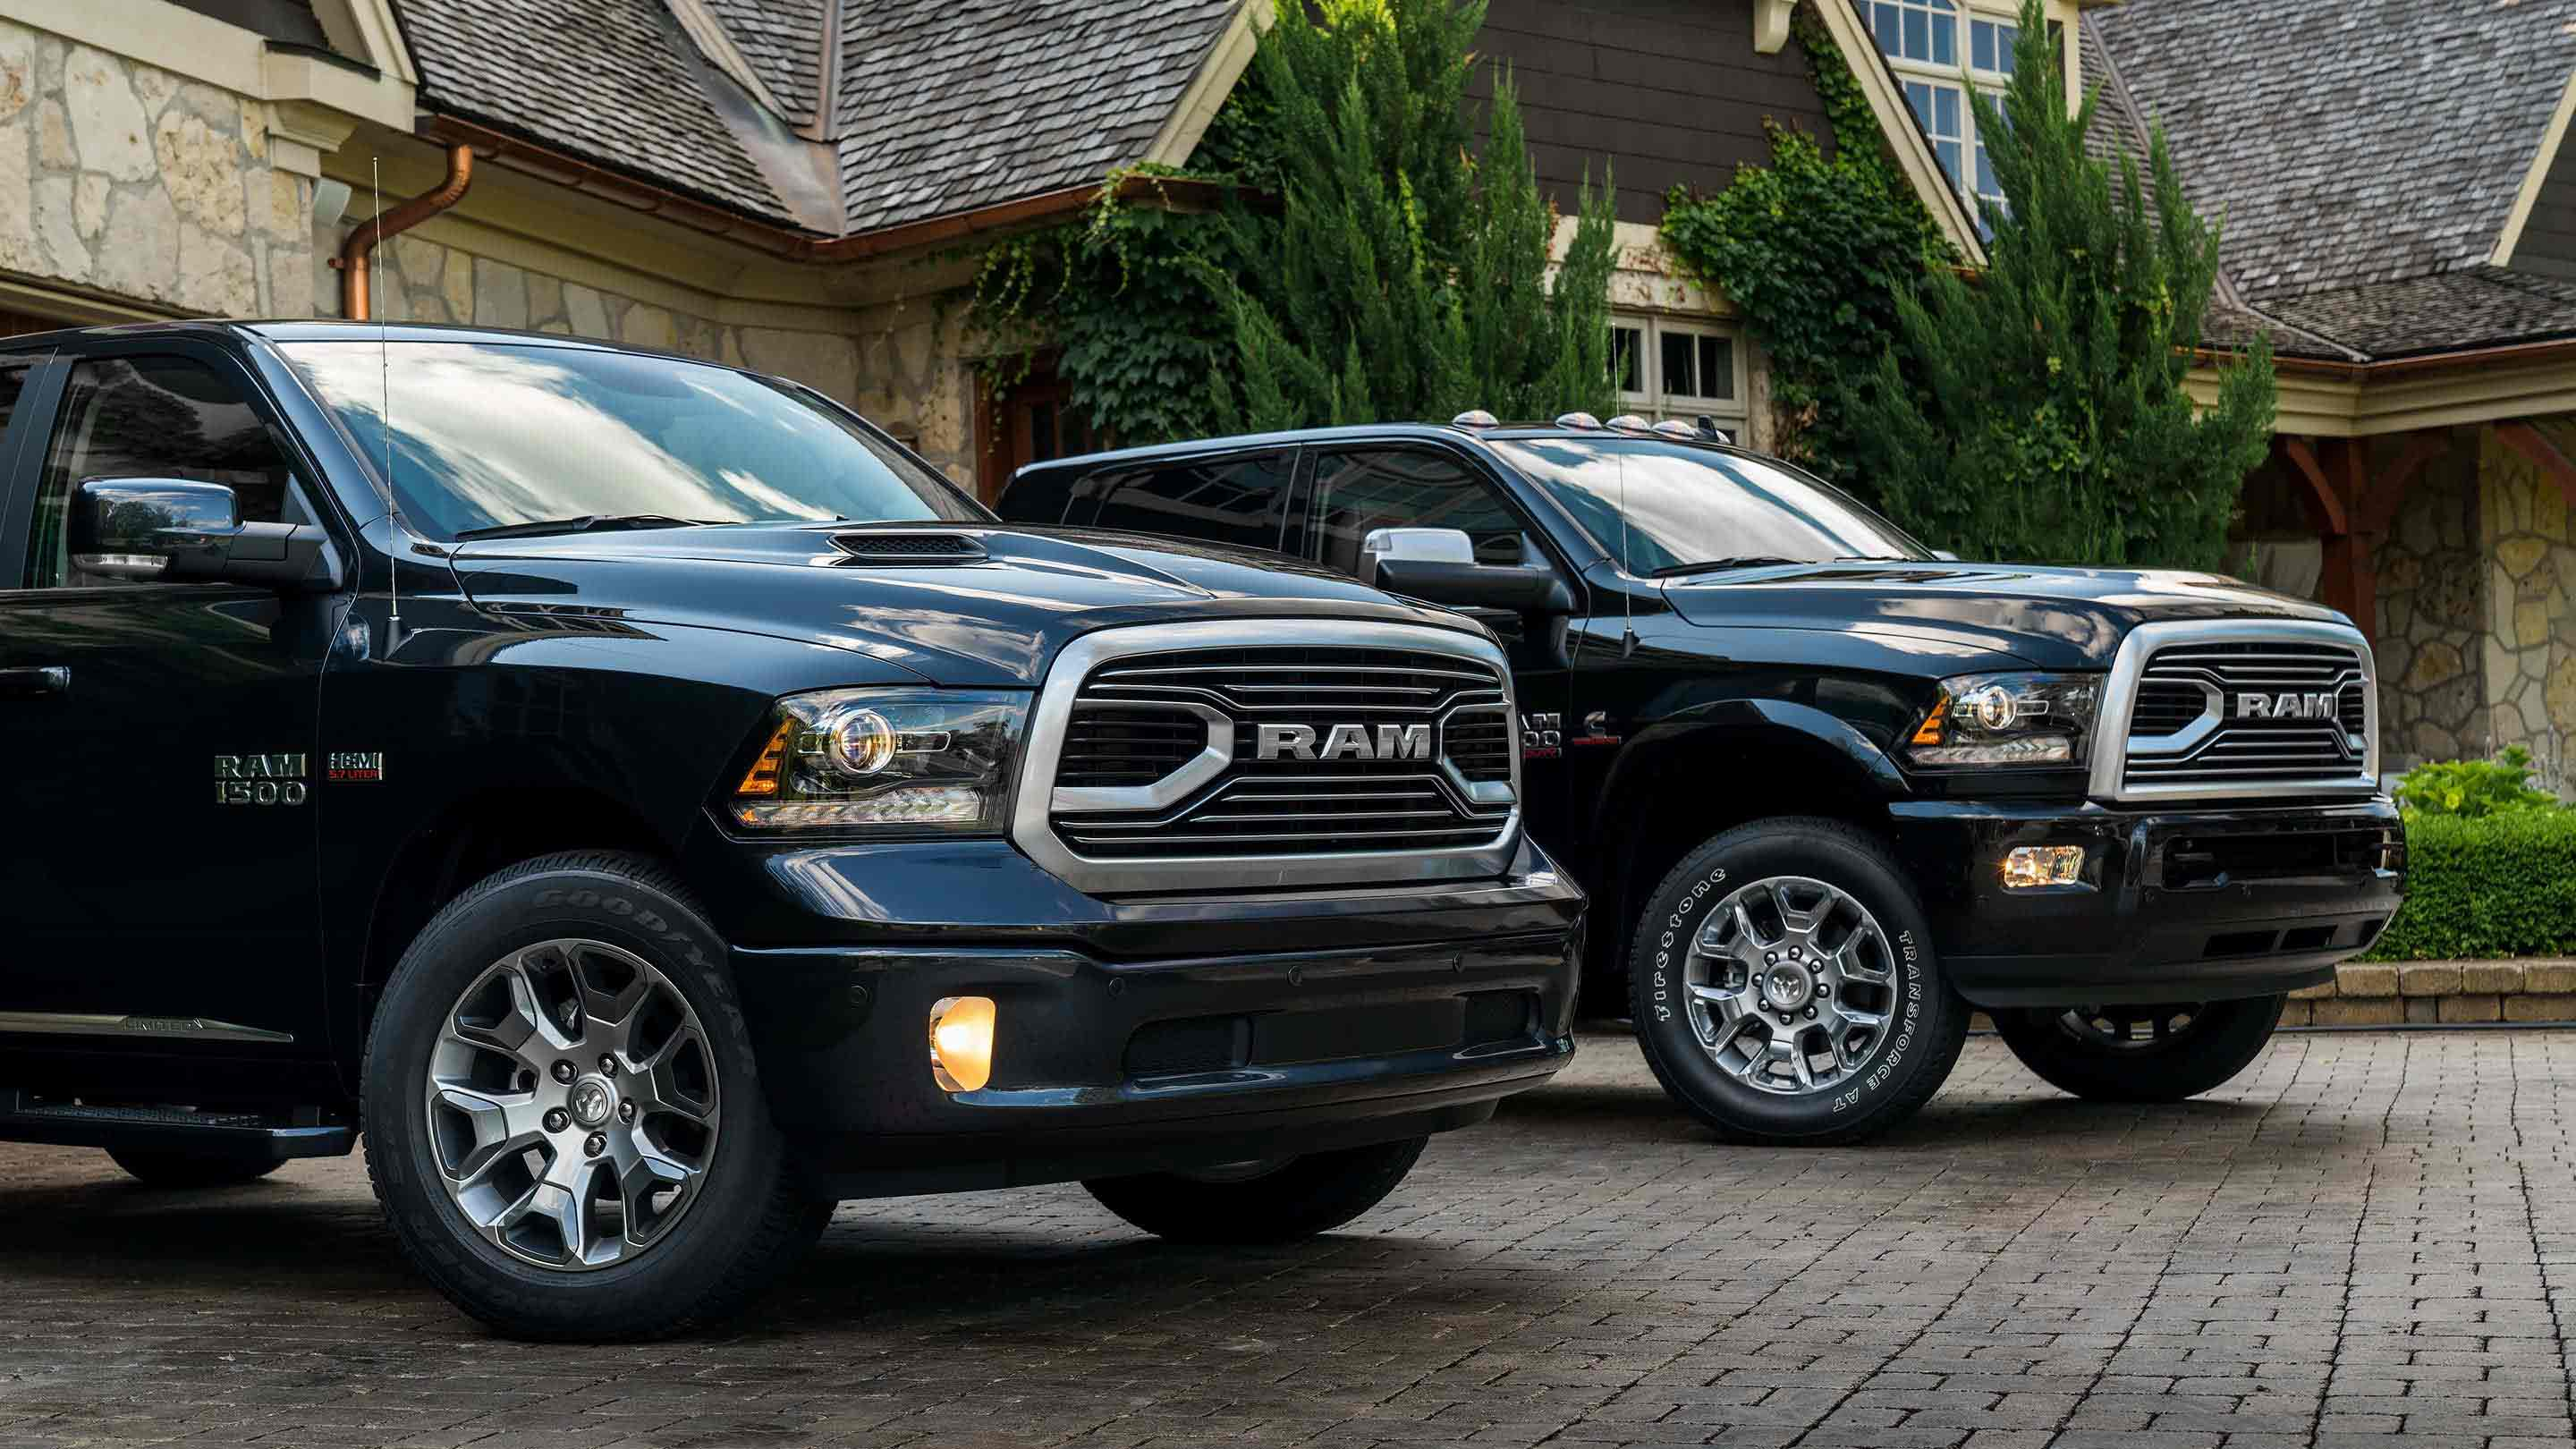 2018 ram 1500 limited tungsten edition pictures photo autos post. Black Bedroom Furniture Sets. Home Design Ideas